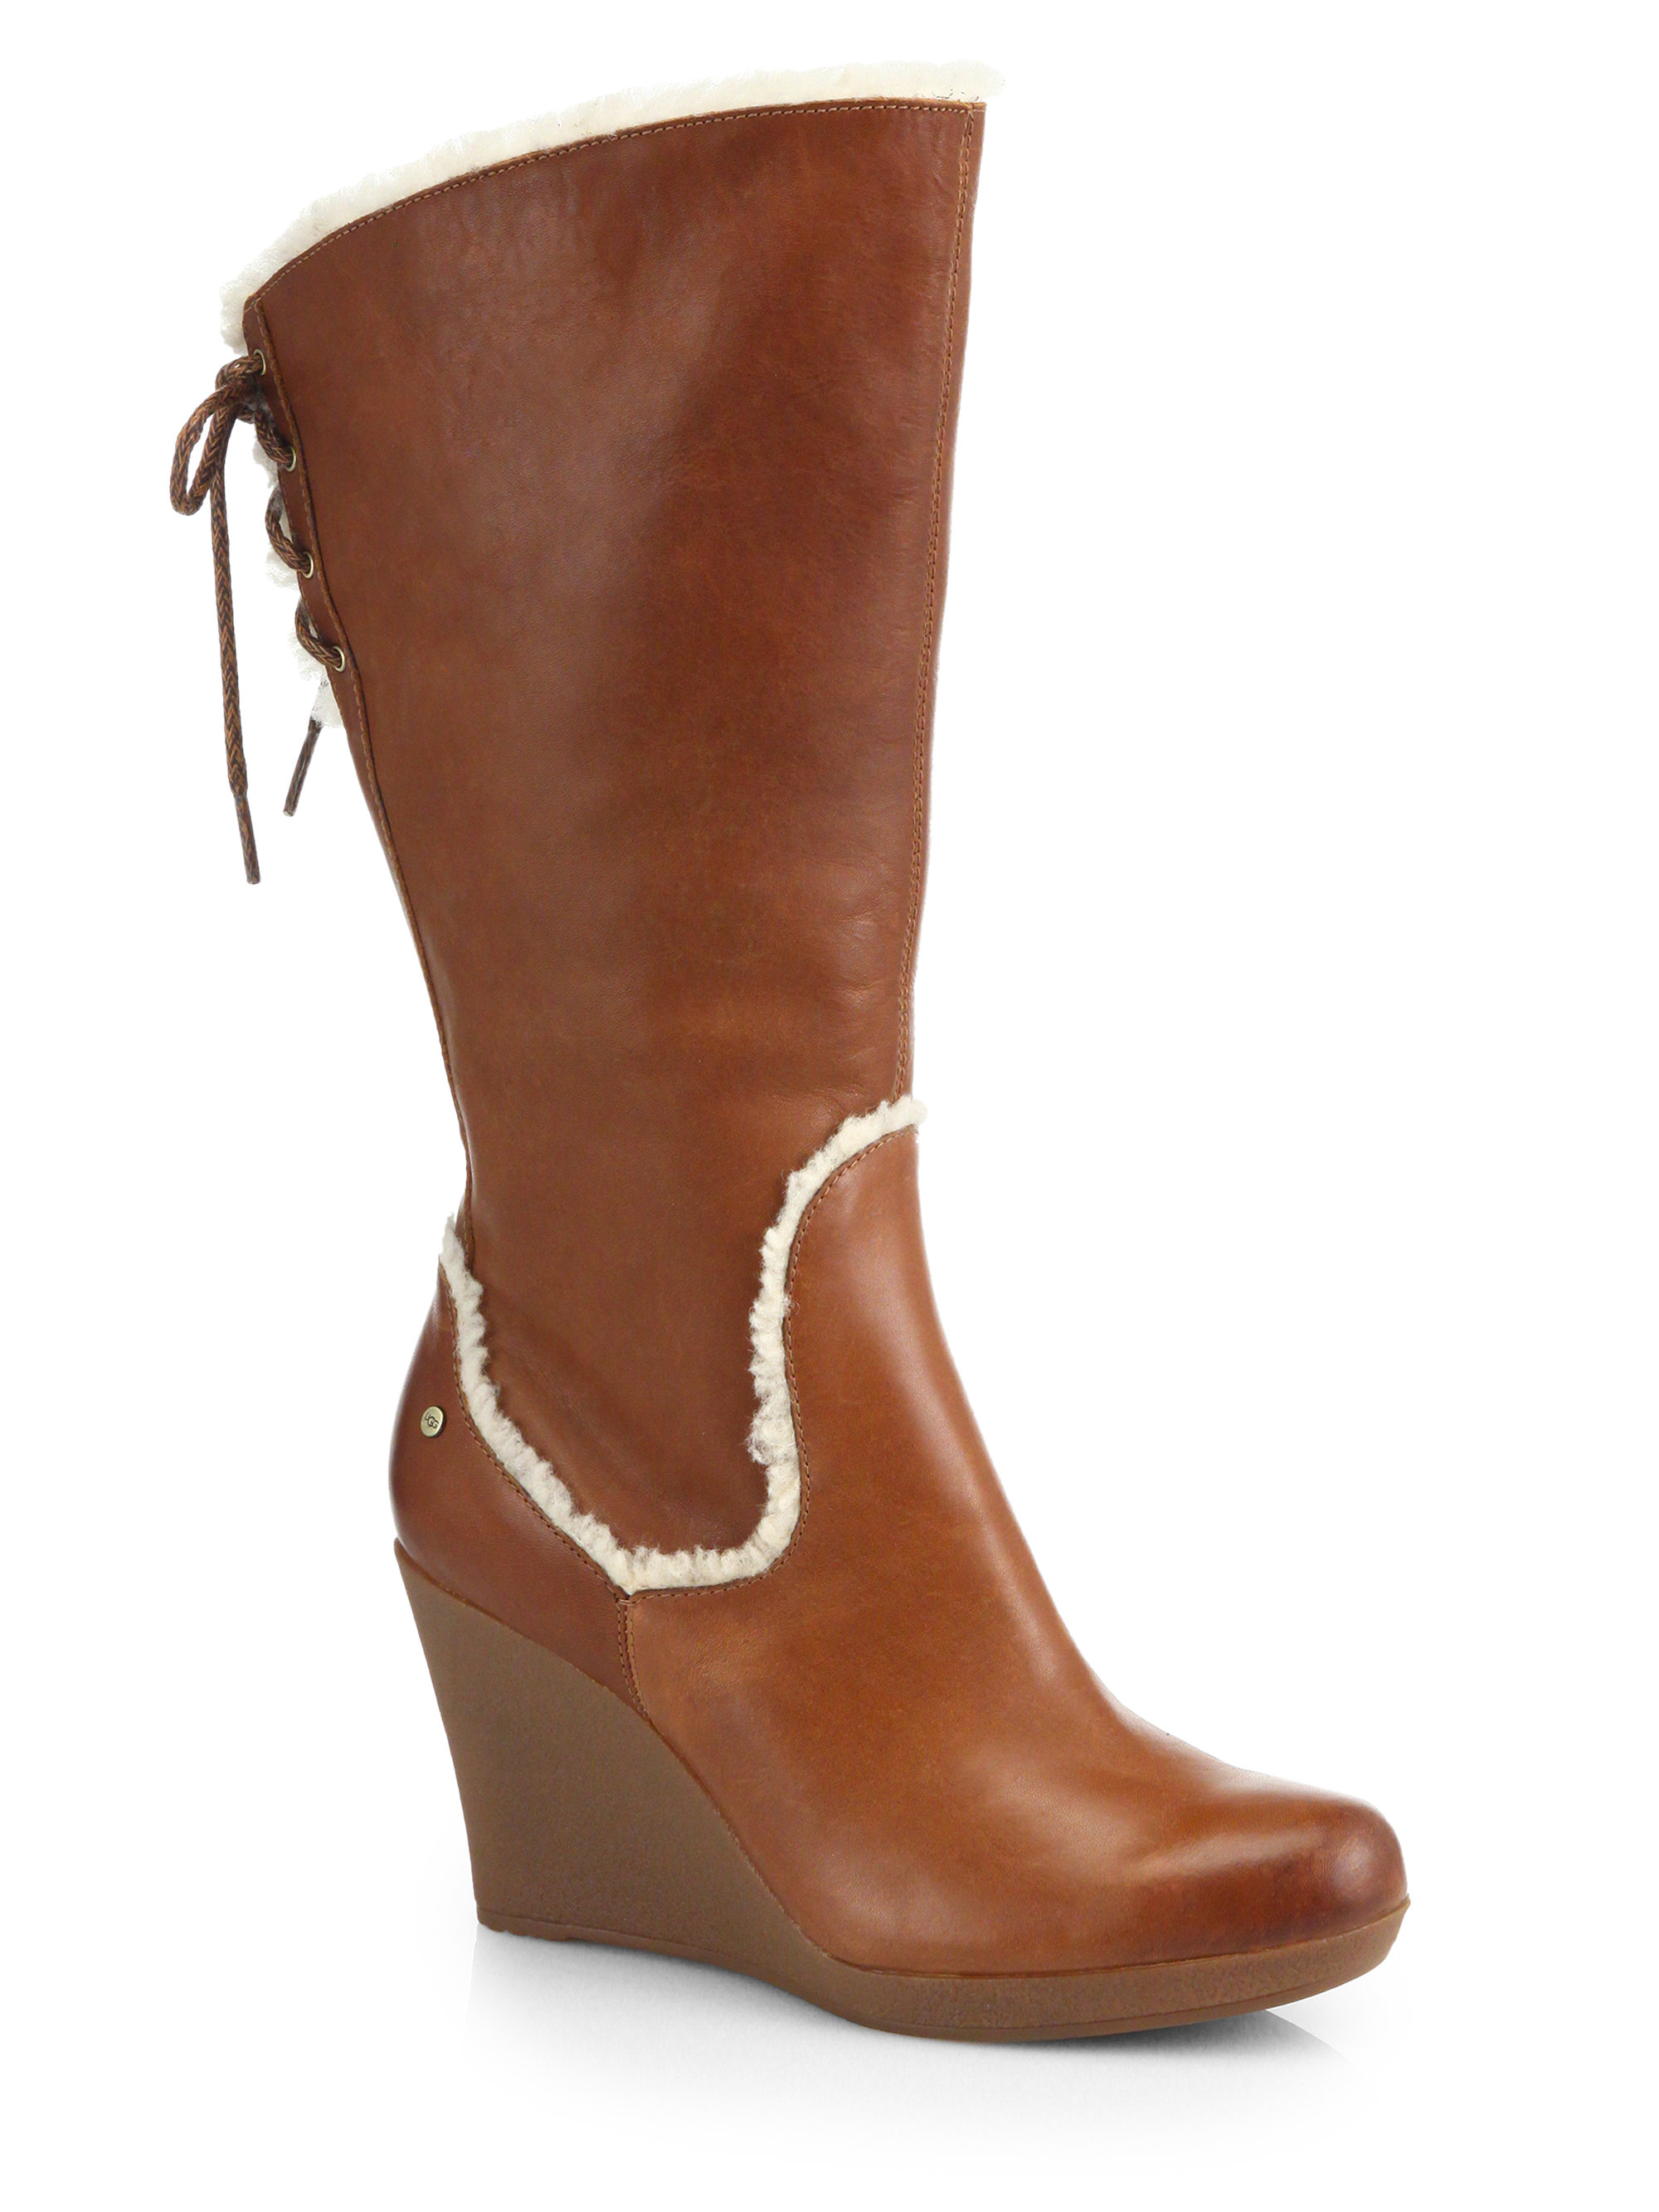 Lyst Ugg Emilie Leather Mid Calf Wedge Boots In Brown